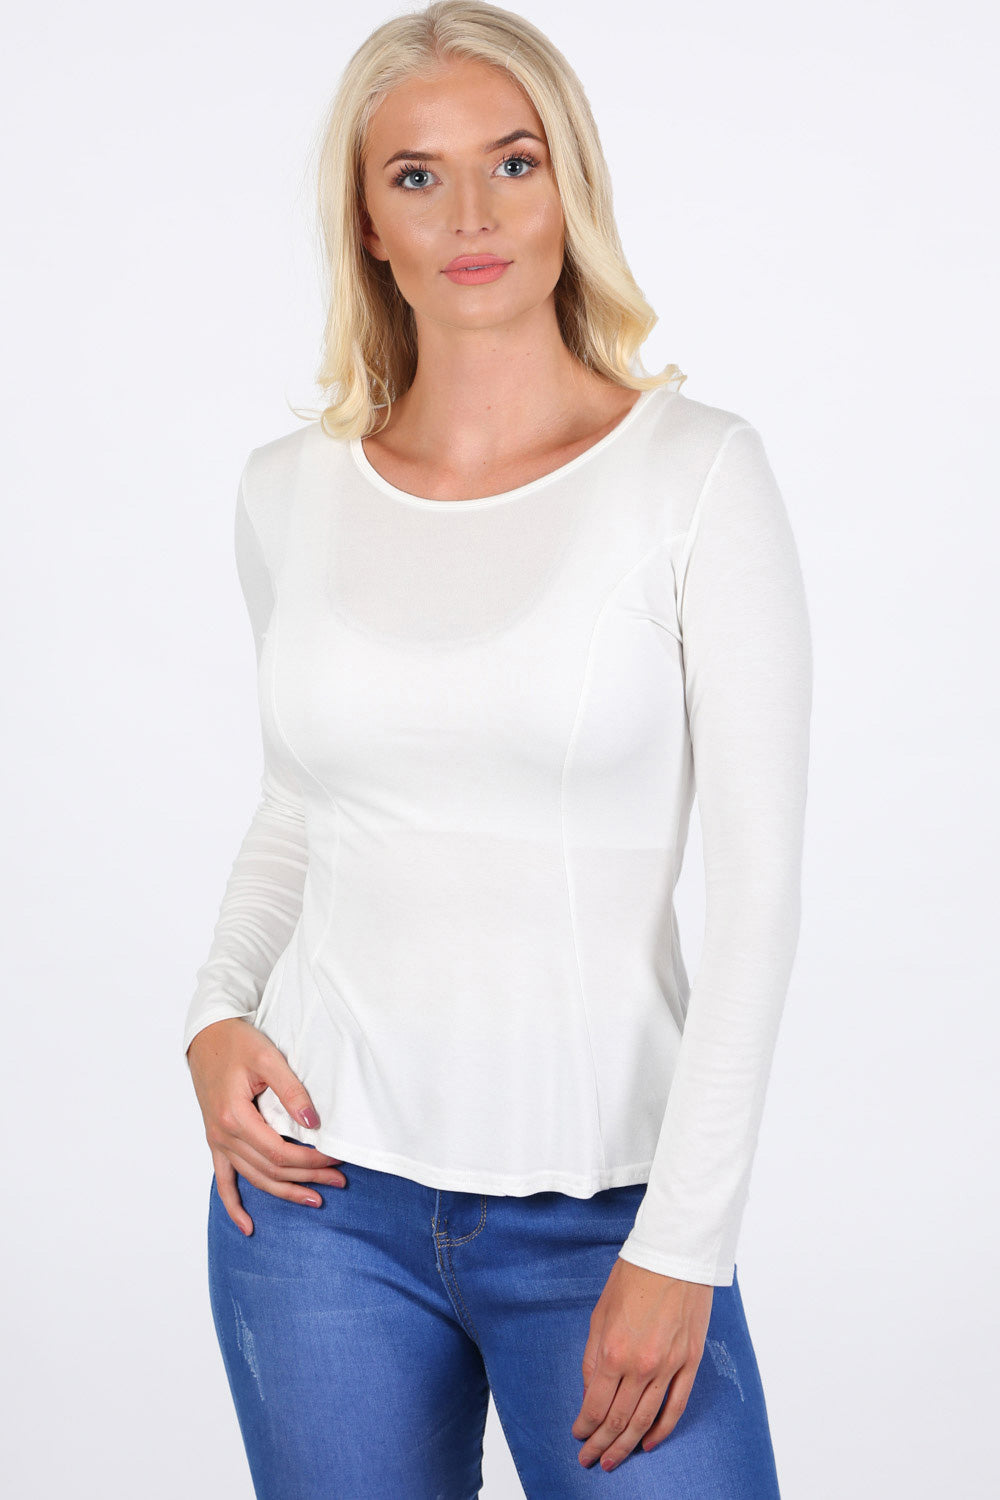 Scoop Neck Long Sleeve Peplum Top in Cream 1